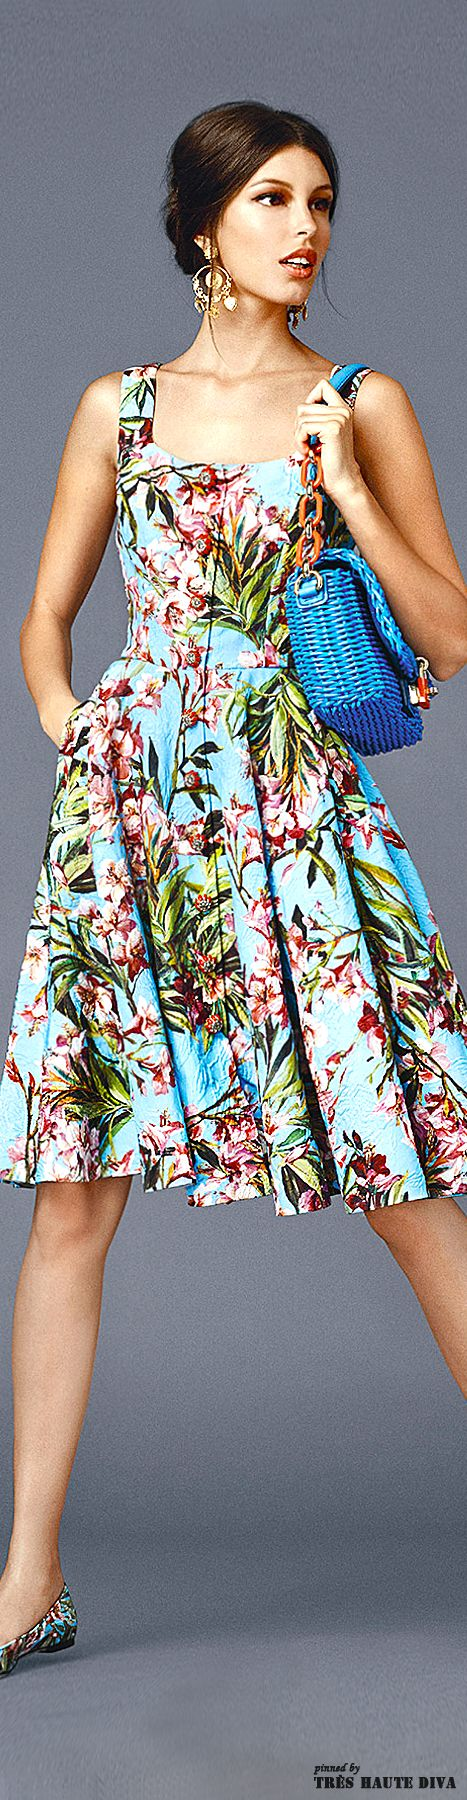 Dolce Gabbana Spring/Summer 2014 Looks like this has a front-zip as part of the dress design